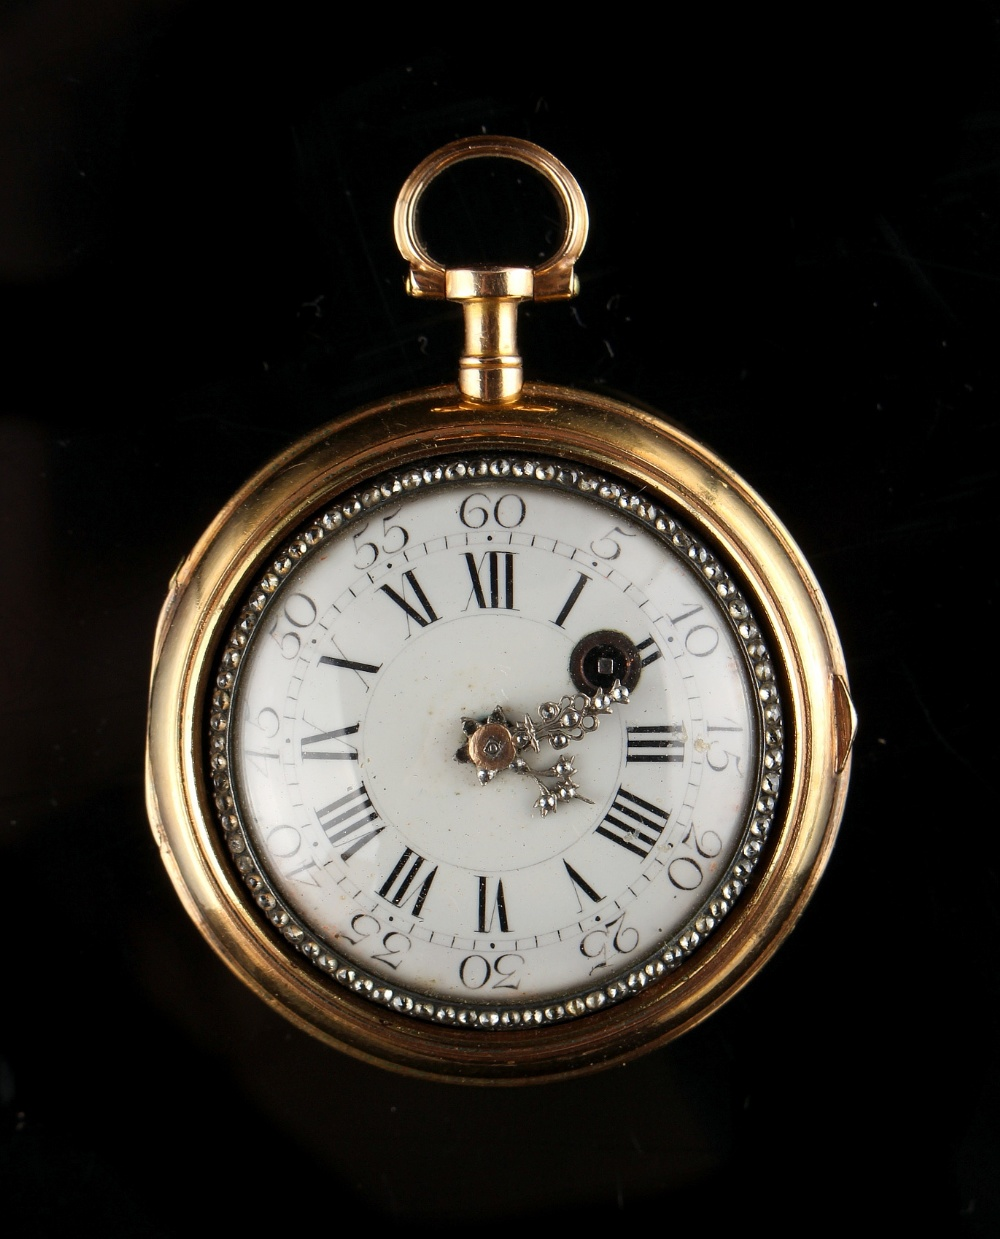 Lot 17 - Property of a deceased estate - a late 18th century French gold pair cased pocket watch, the two